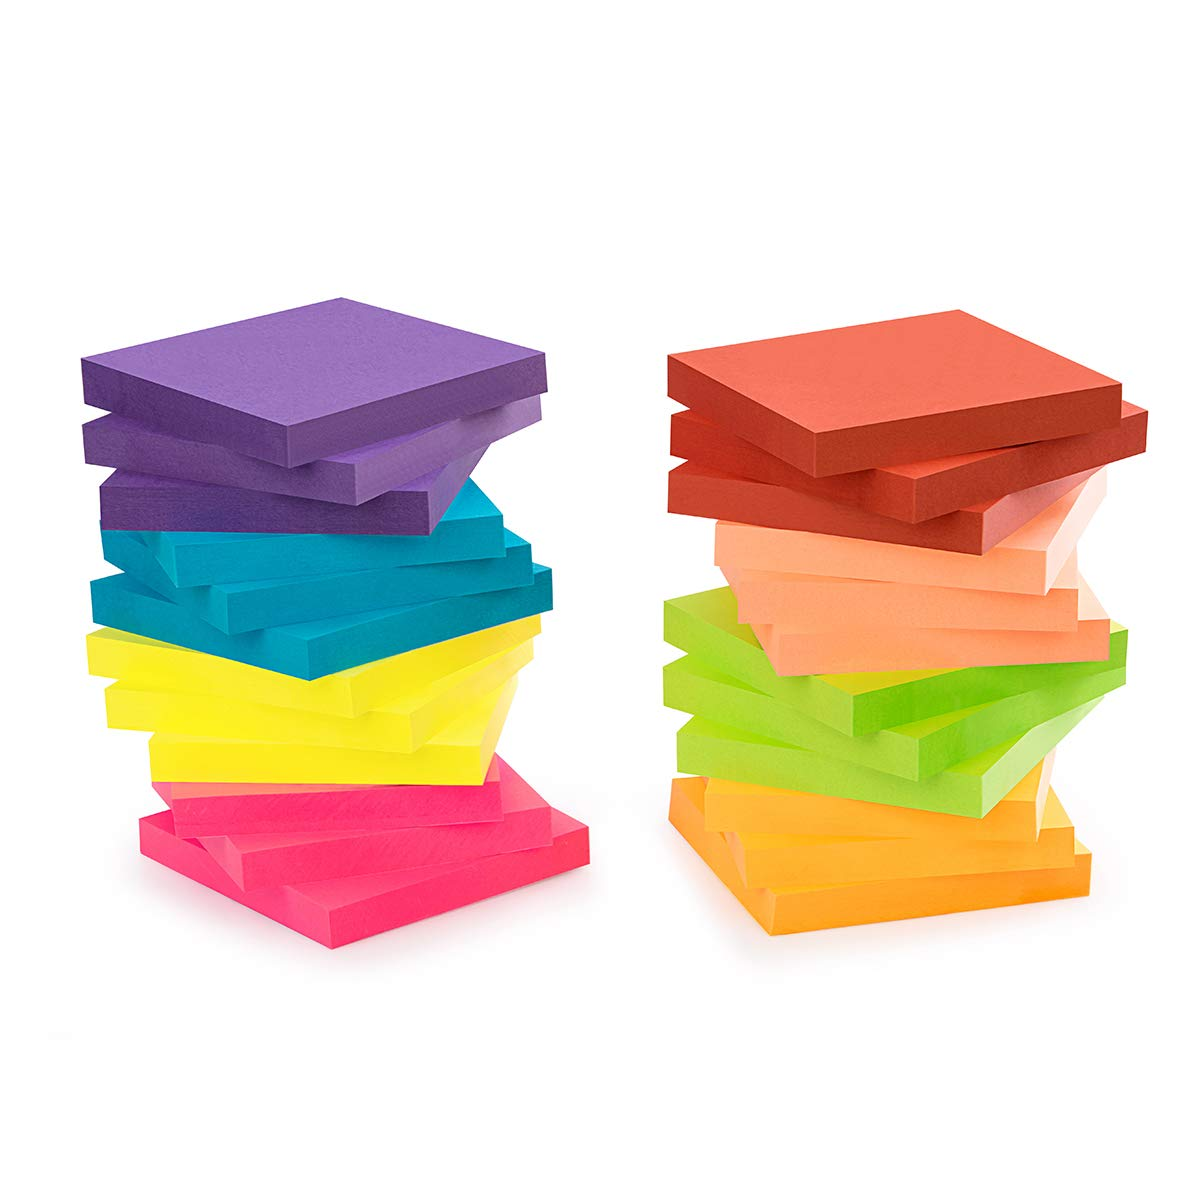 ZCZN 8 Bright Color Sticky Notes,3 x 3 in,24 Pads/Pack,100 Sheets/Pad,Self-Sticky Notes by ZCZN